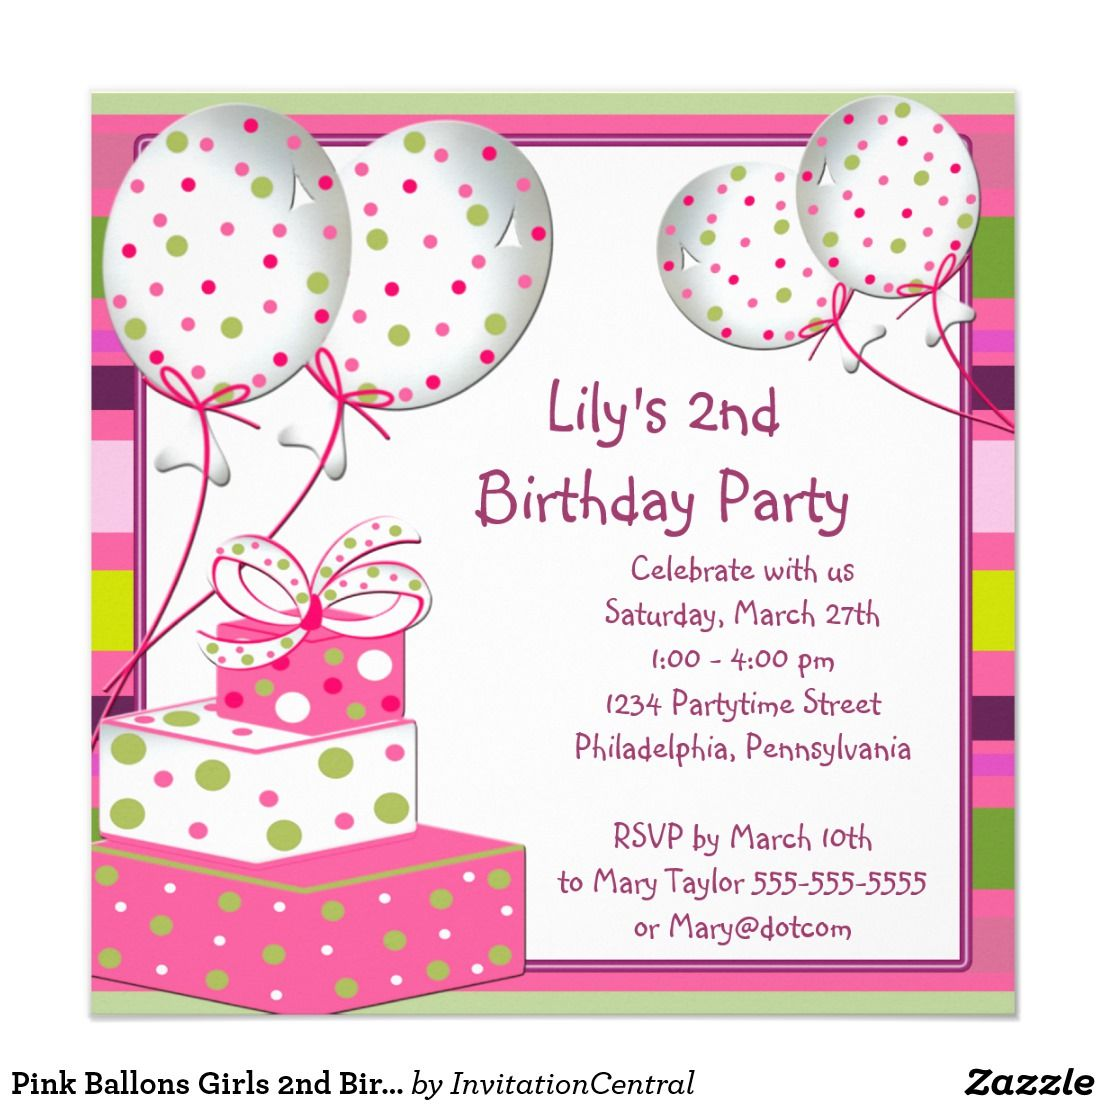 Pink Ballons Girls 2nd Birthday Party Card | Party invitations and ...